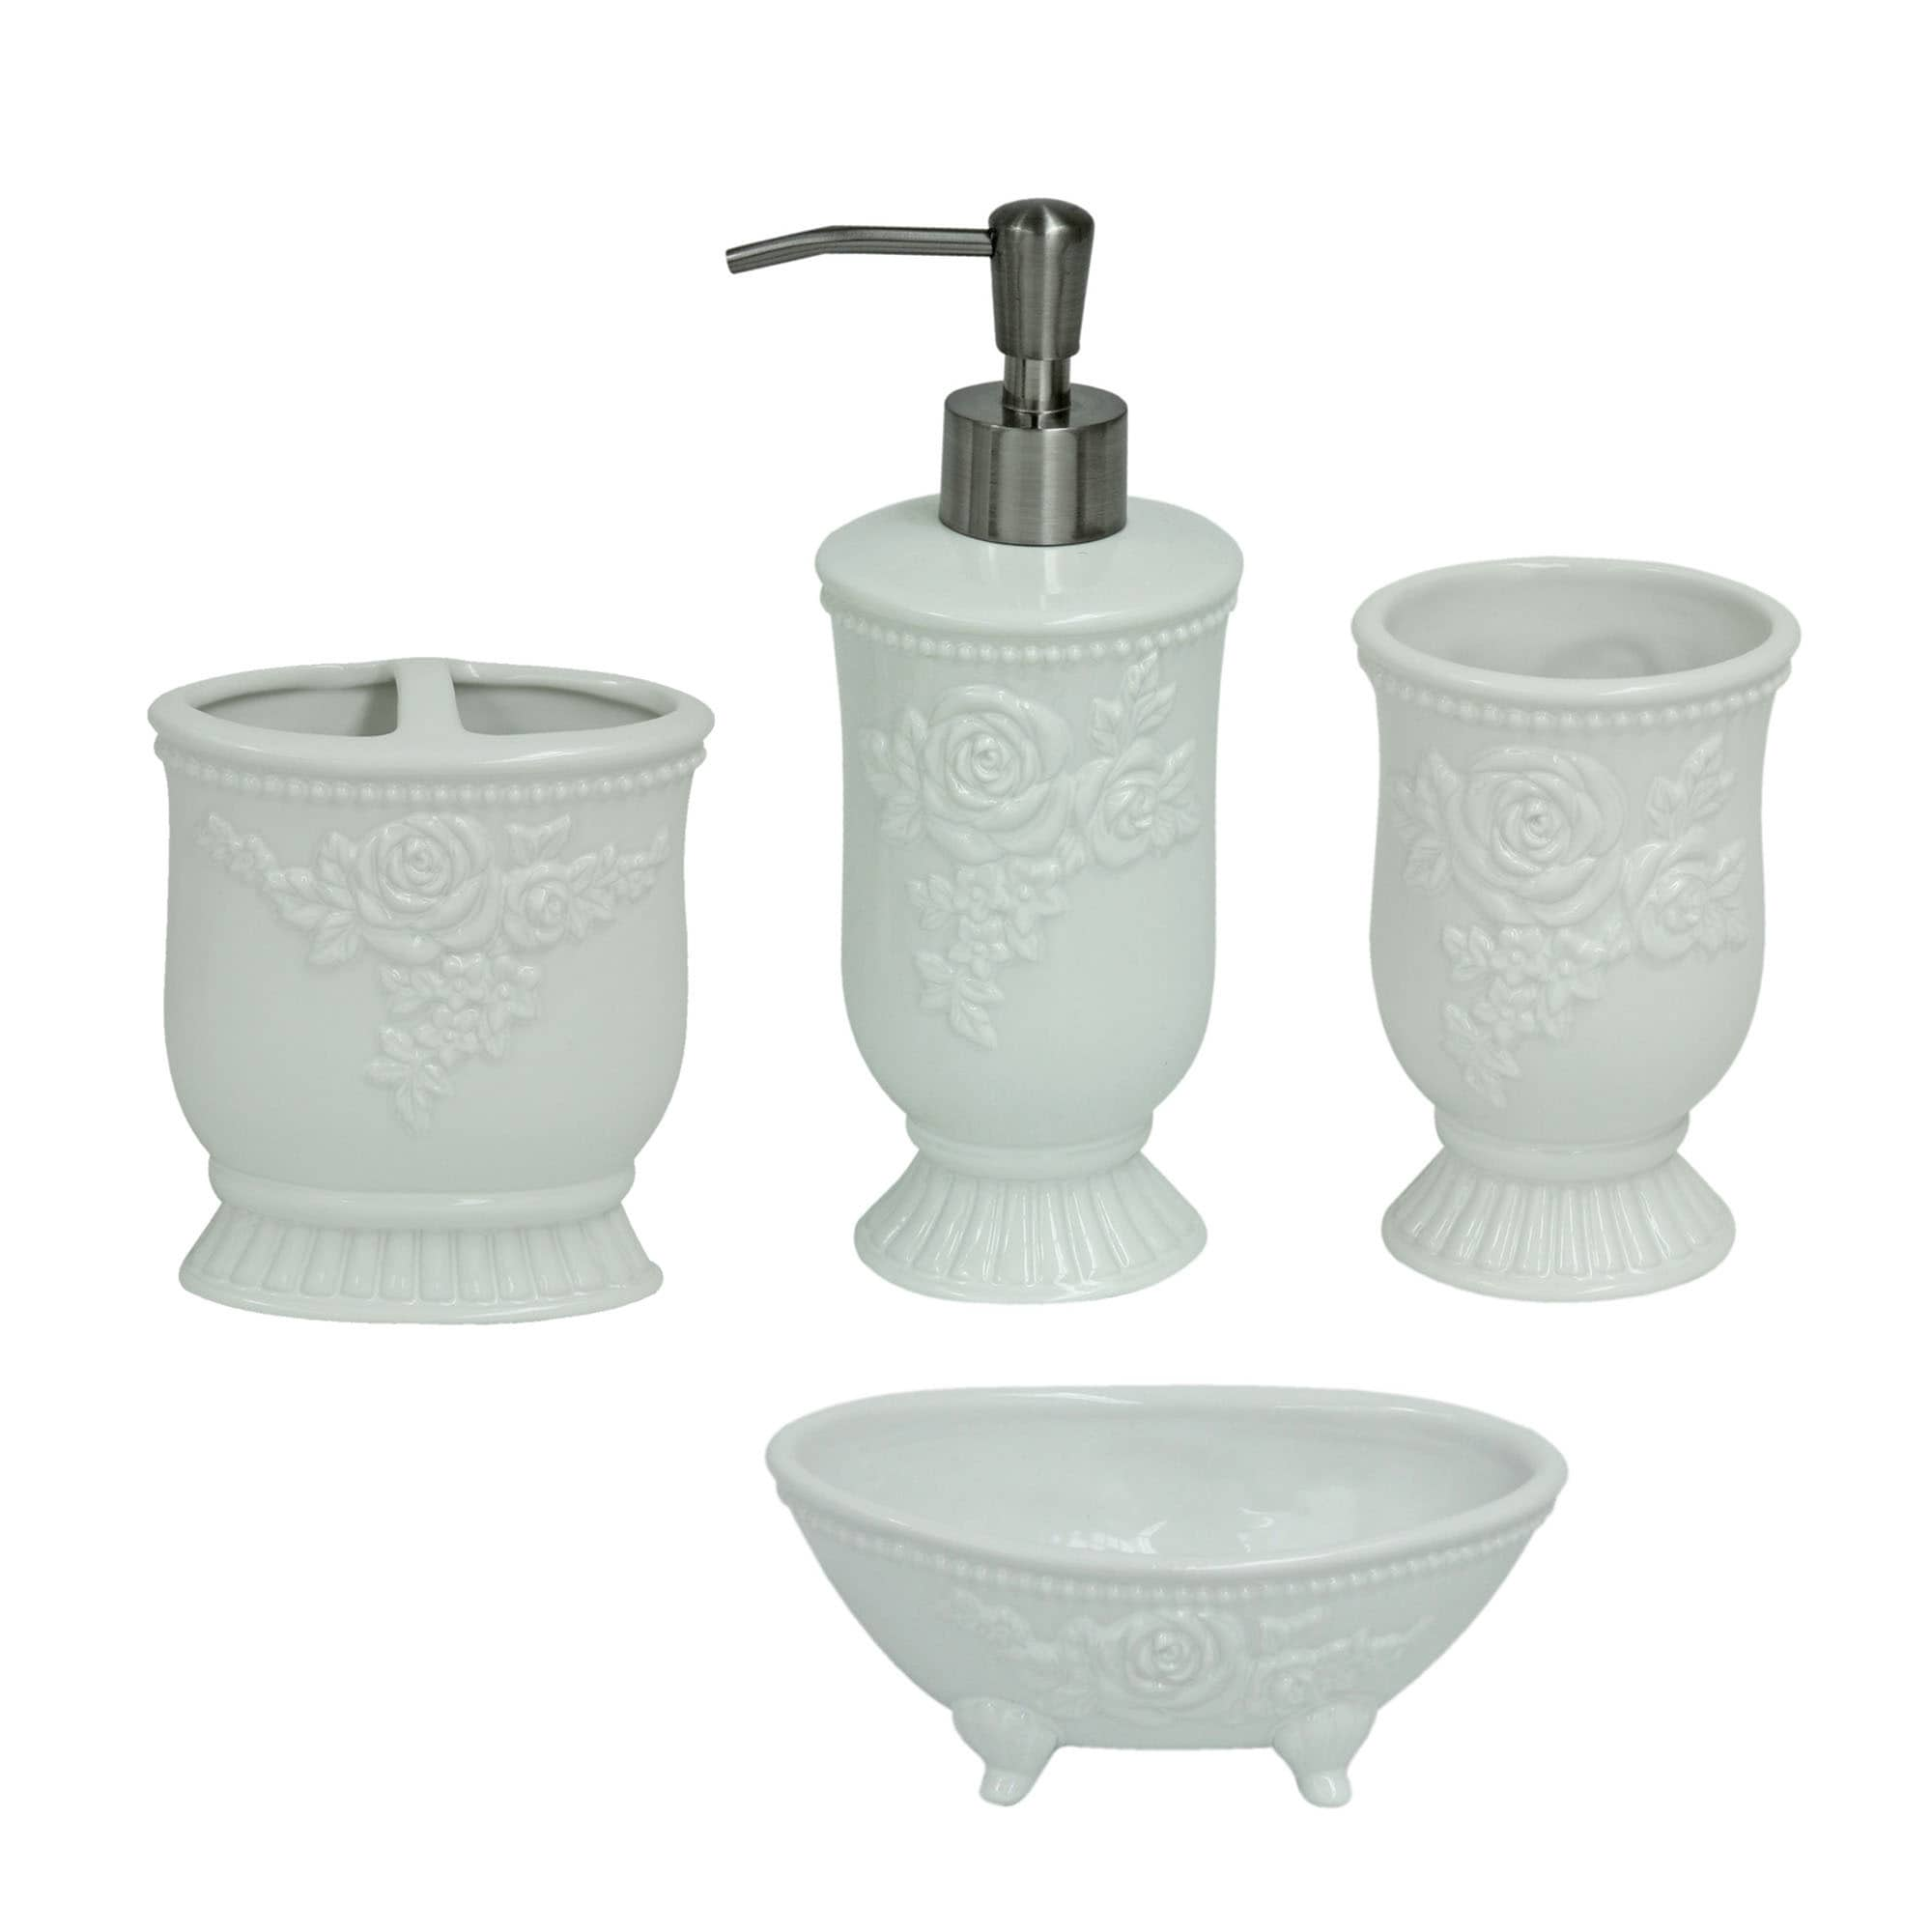 Jessica Simpson Ellie Bathroom Accessory Collection - Free Shipping ...